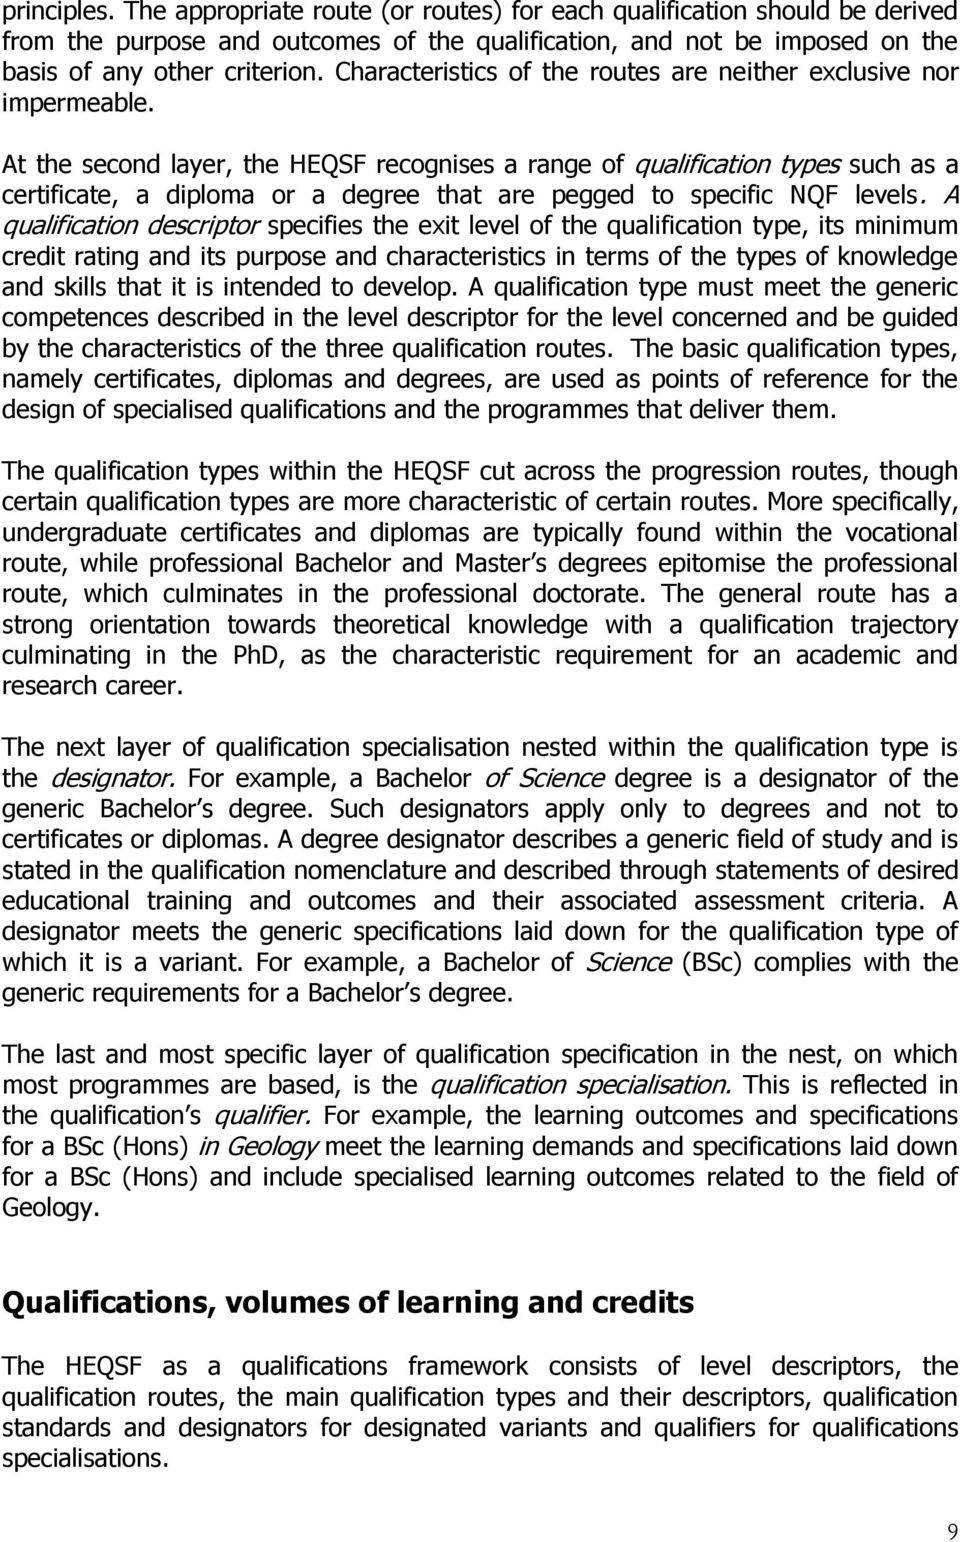 At the second layer, the HEQSF recognises a range of qualification types such as a certificate, a diploma or a degree that are pegged to specific NQF levels.